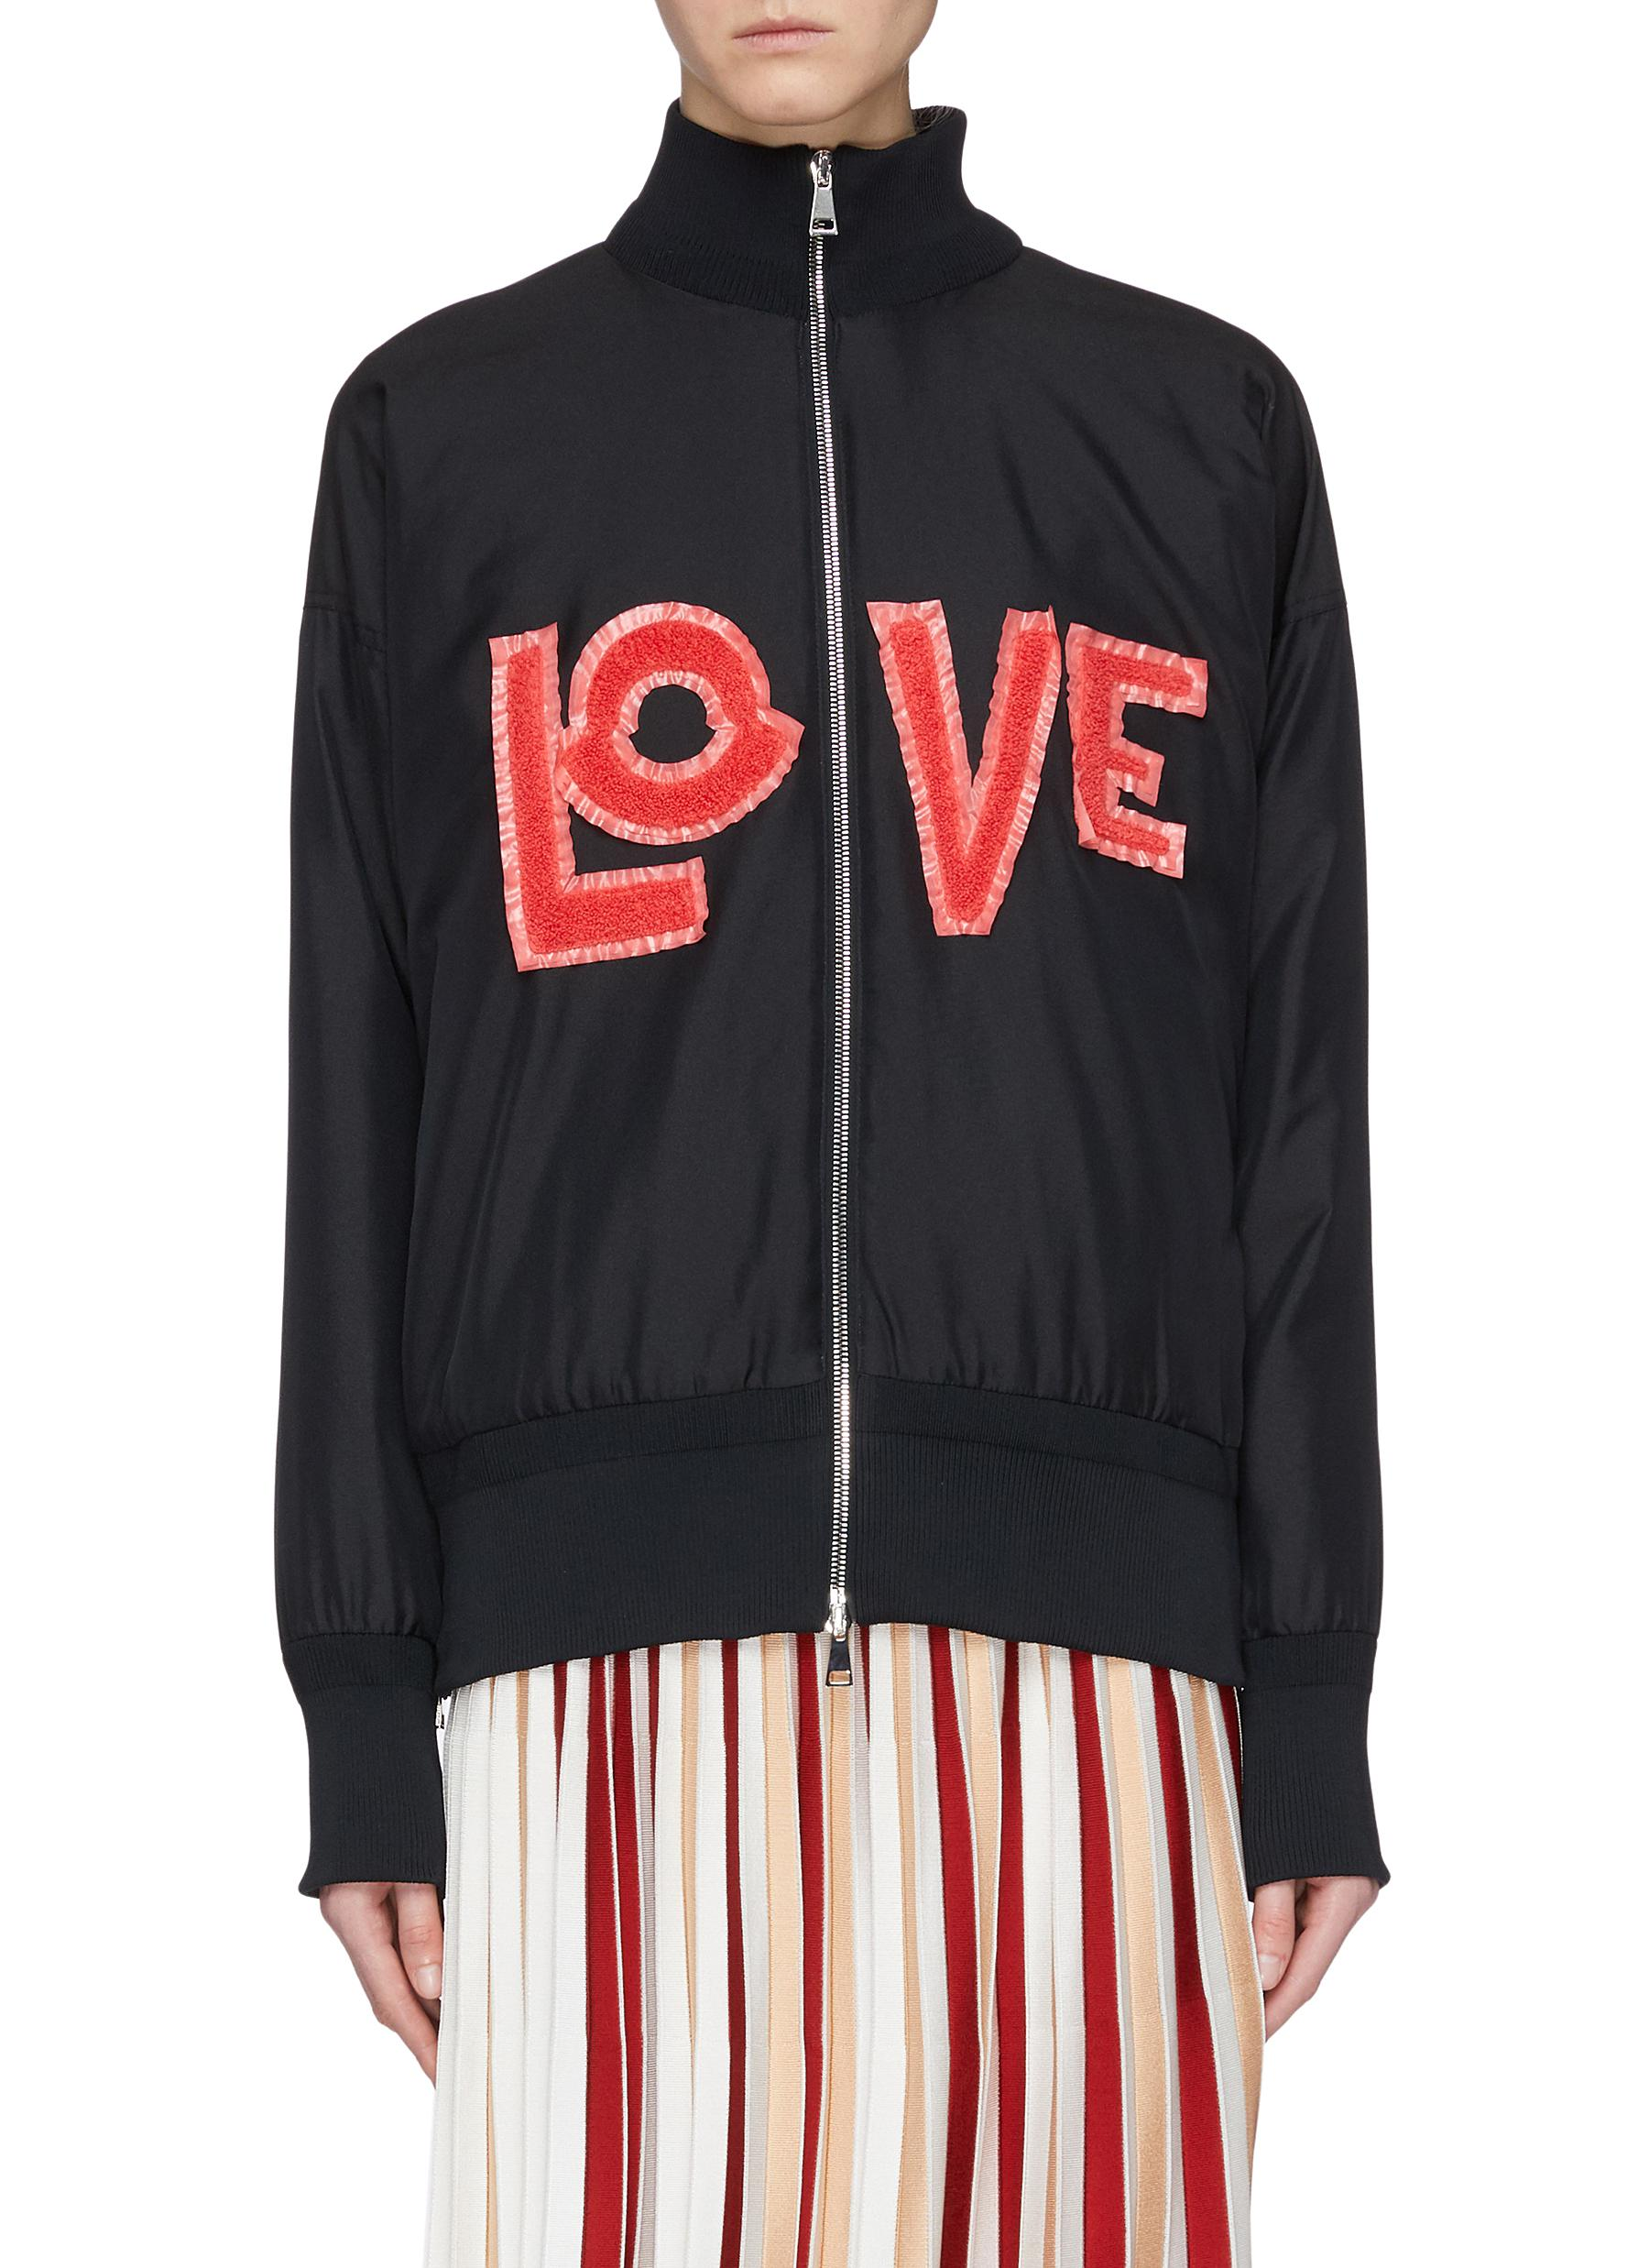 x 1952 Love chenille patch down padded bomber jacket by Moncler Genius